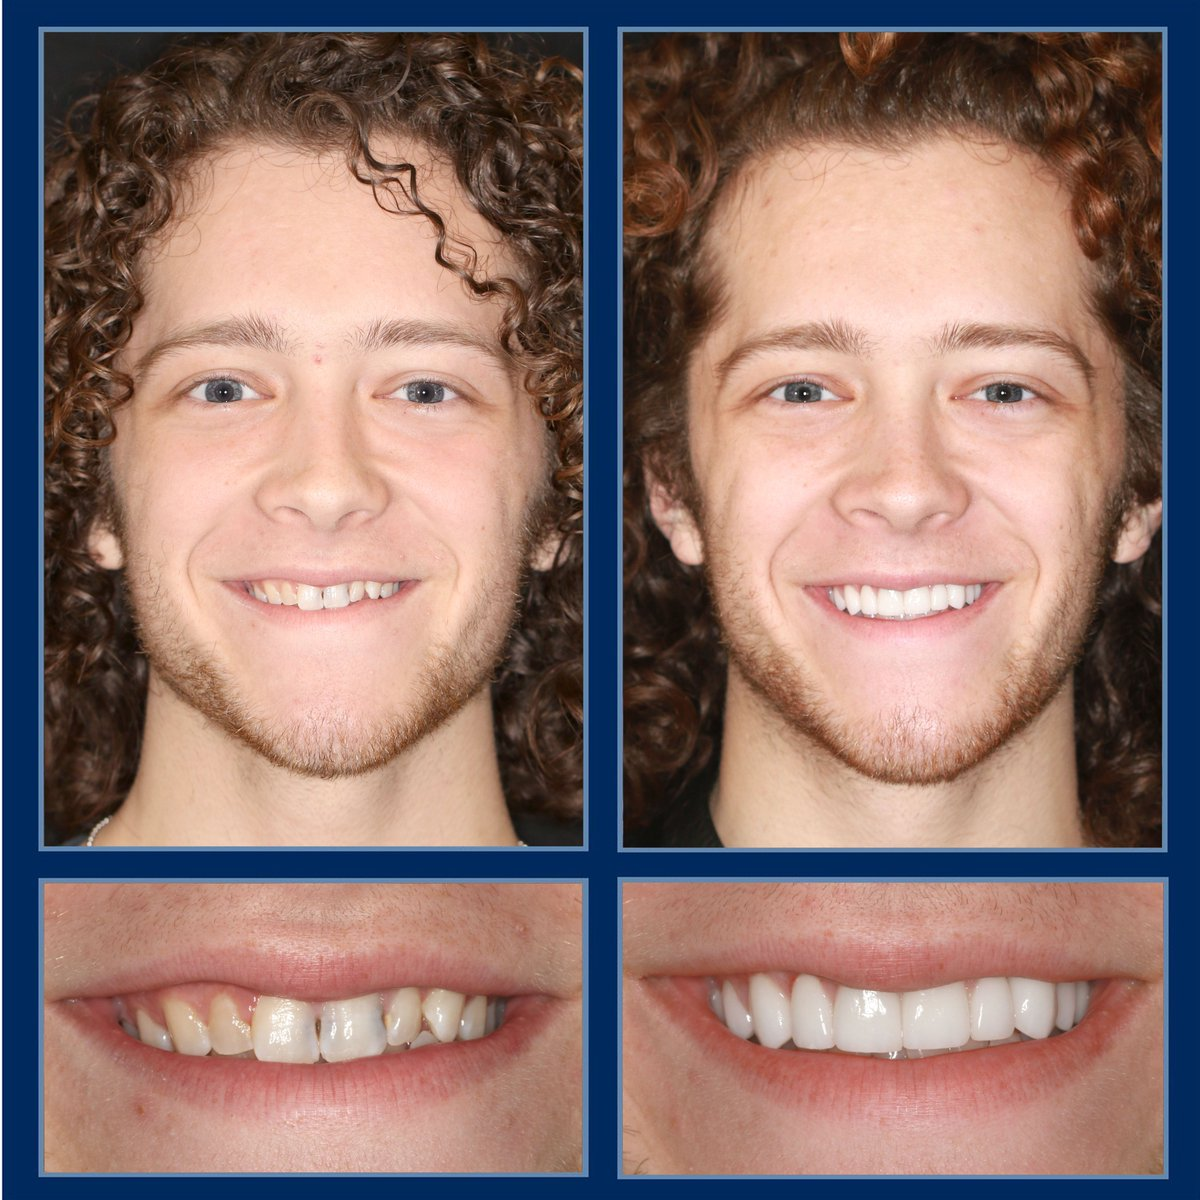 Is it just us or does Max look like a total rockstar with his new #smilemakeover? We love when solutions like #veneers, bridges, #dentalimplants and #reconstructivedentistry come together to help a patient look like they've always naturally had that smile. http://TheCosmeticDentistsOfAustin.compic.twitter.com/TOK7cQbCKw